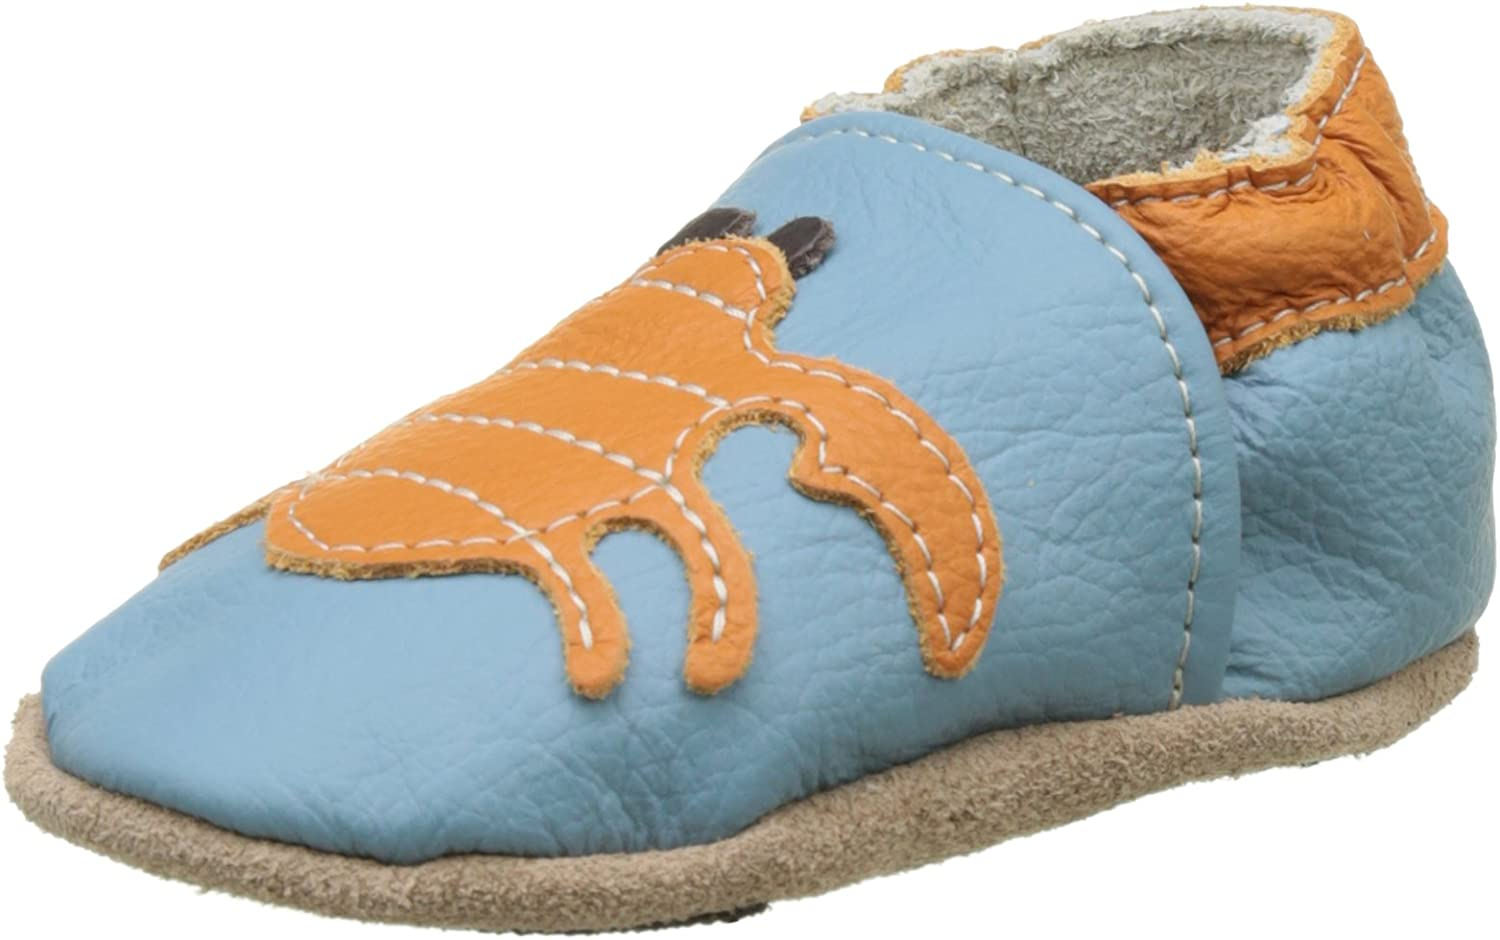 Hobea Germany First-Step Baby Shoes Size : 18//19, 6 to 12 Months, Smiley Design